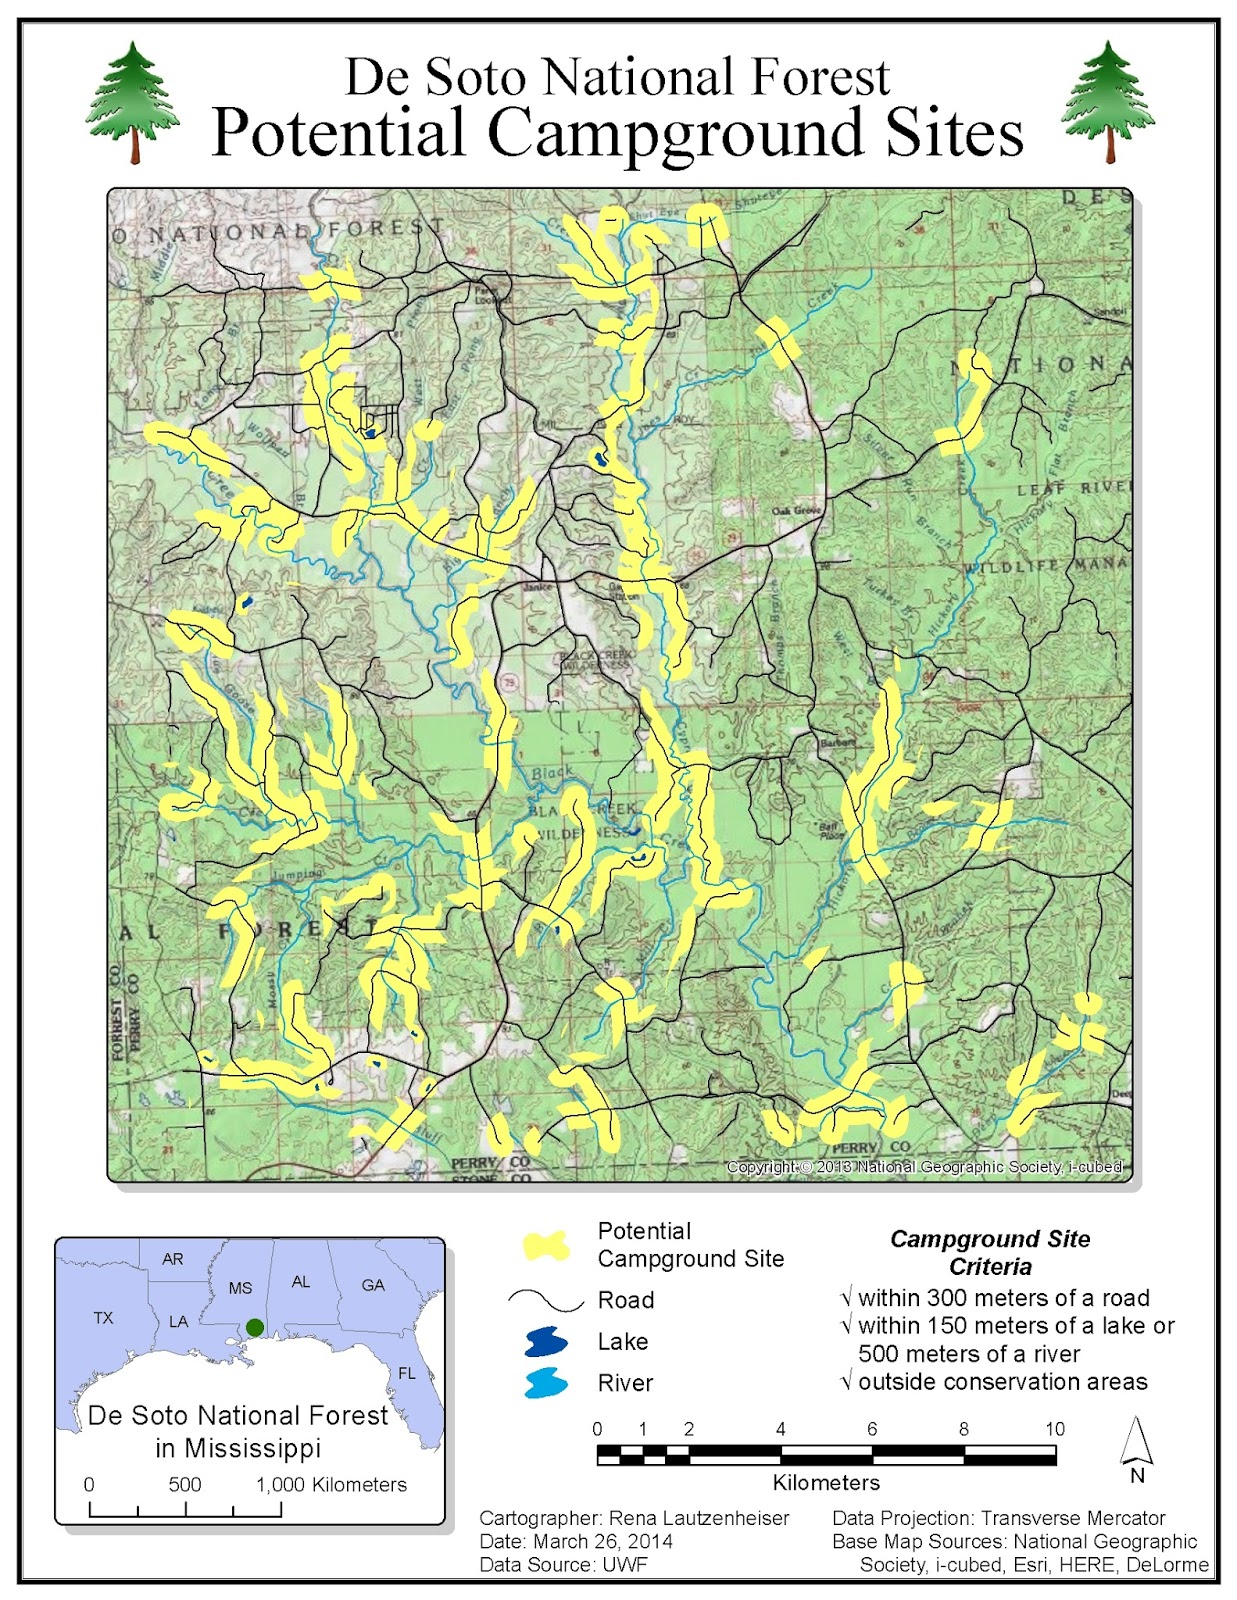 desoto national forest potential campground sites